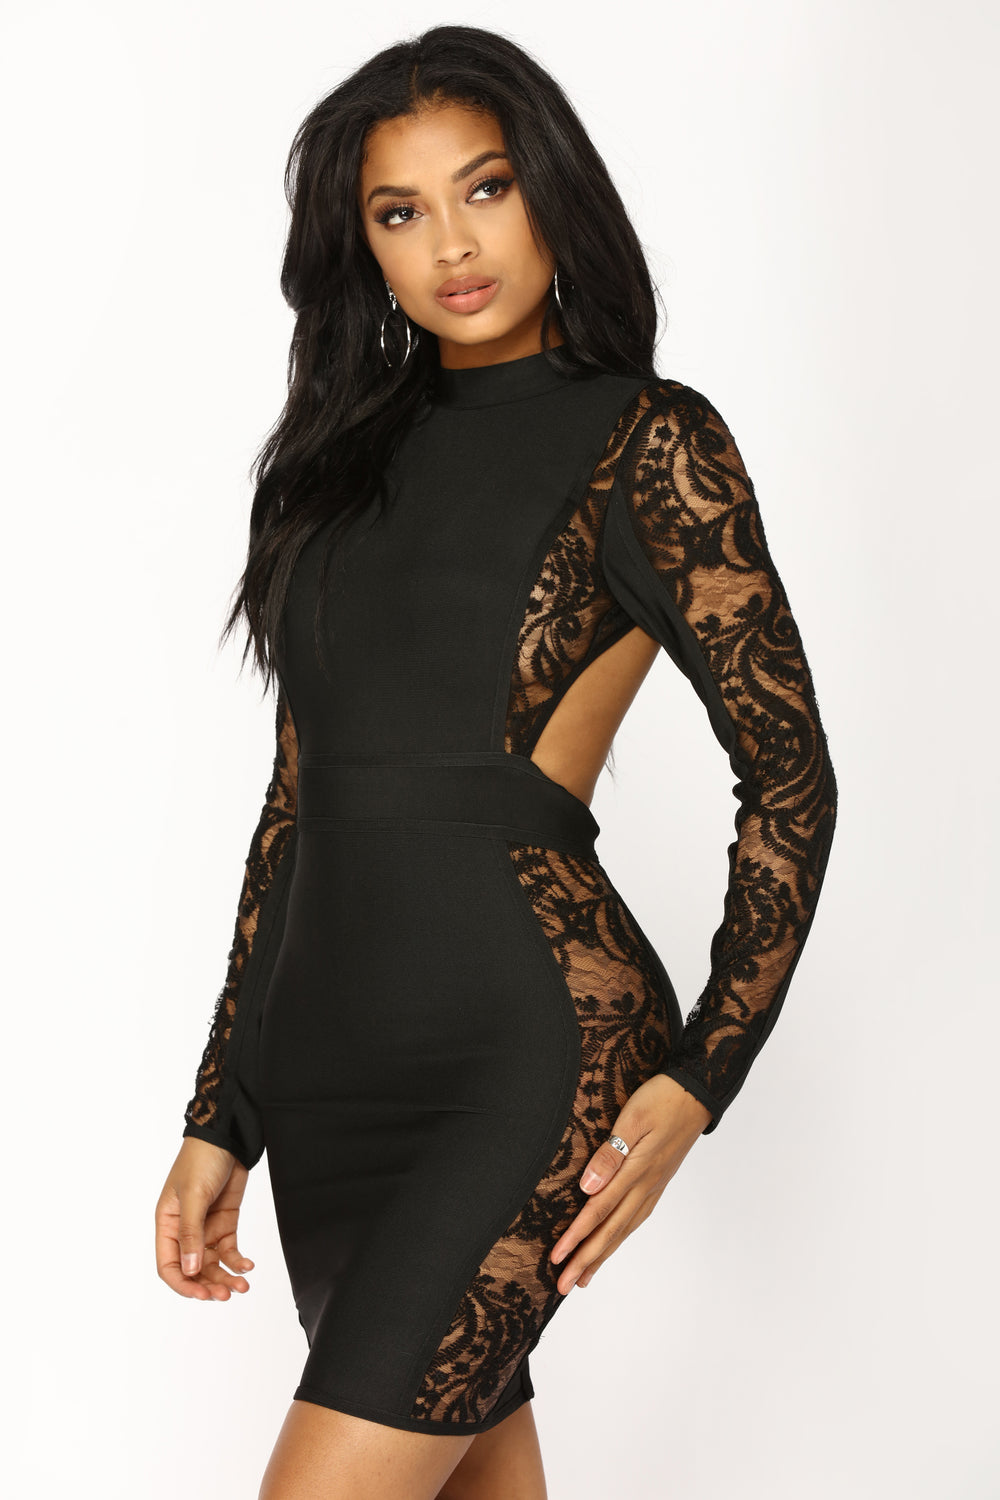 Whiskey Sour Mini Dress - Black